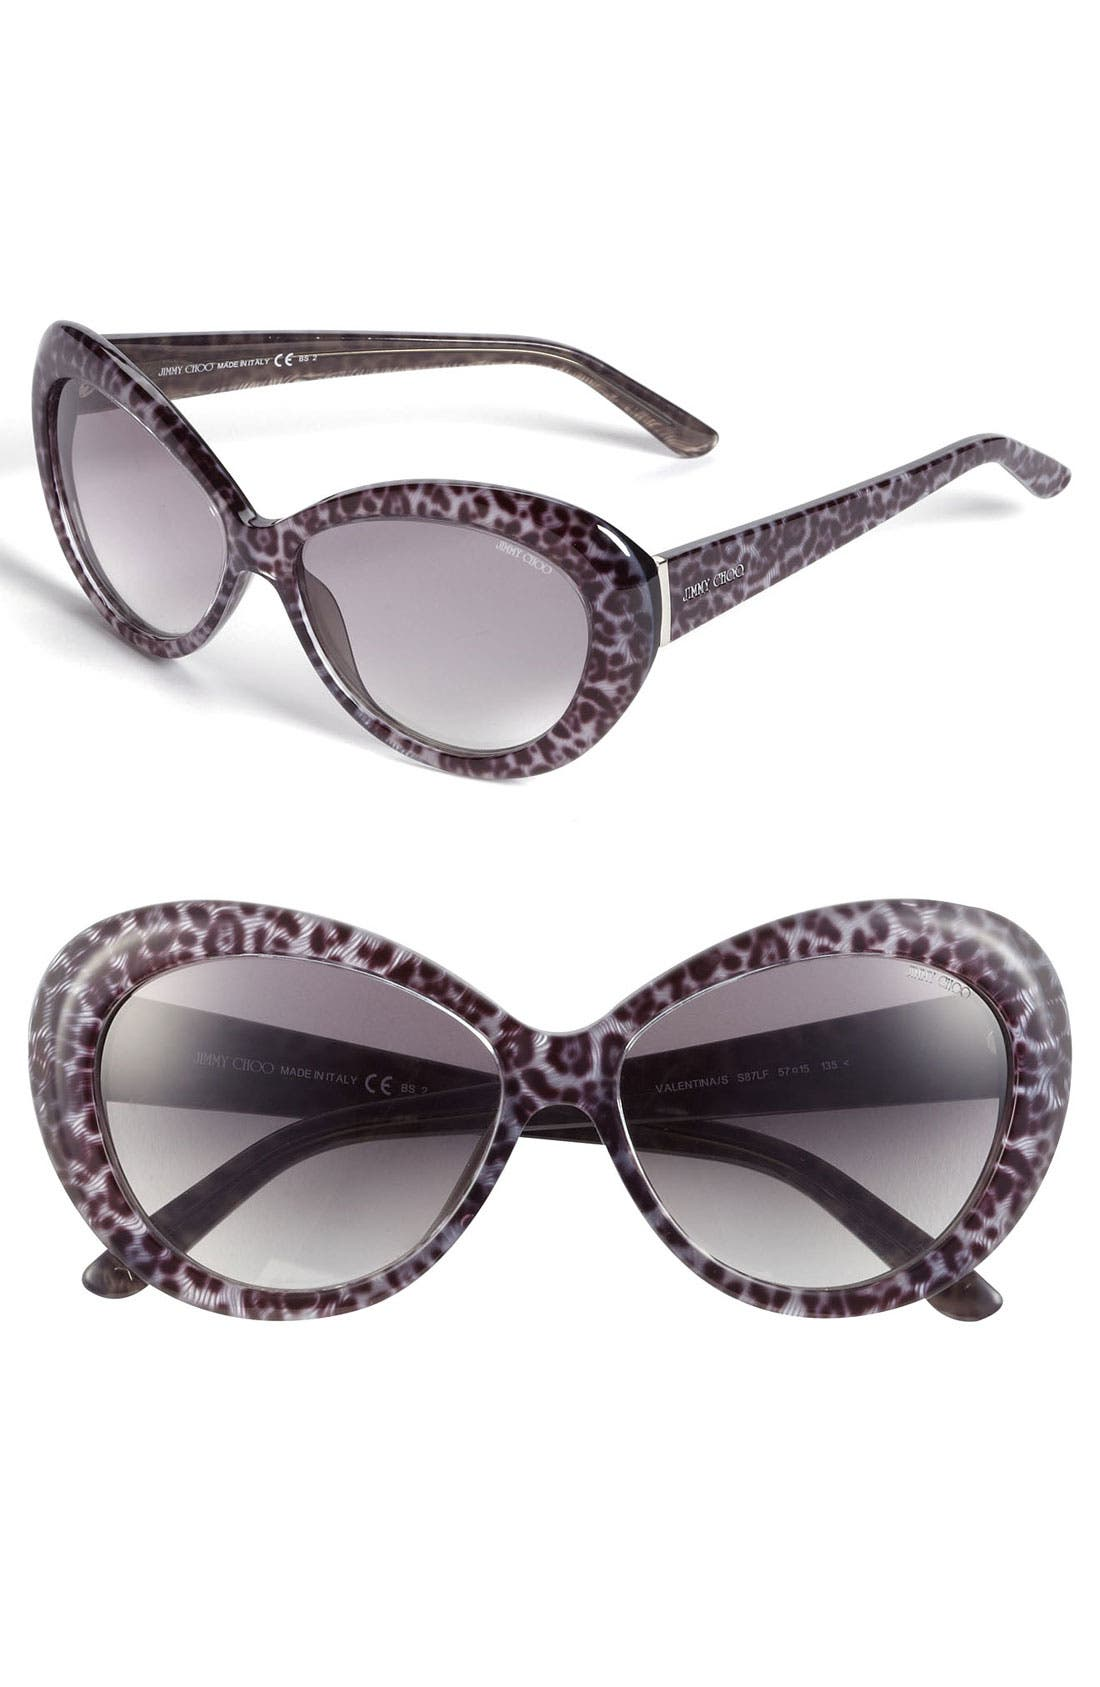 Main Image - Jimmy Choo 'Valentina' 57mm Cat Eye Sunglasses